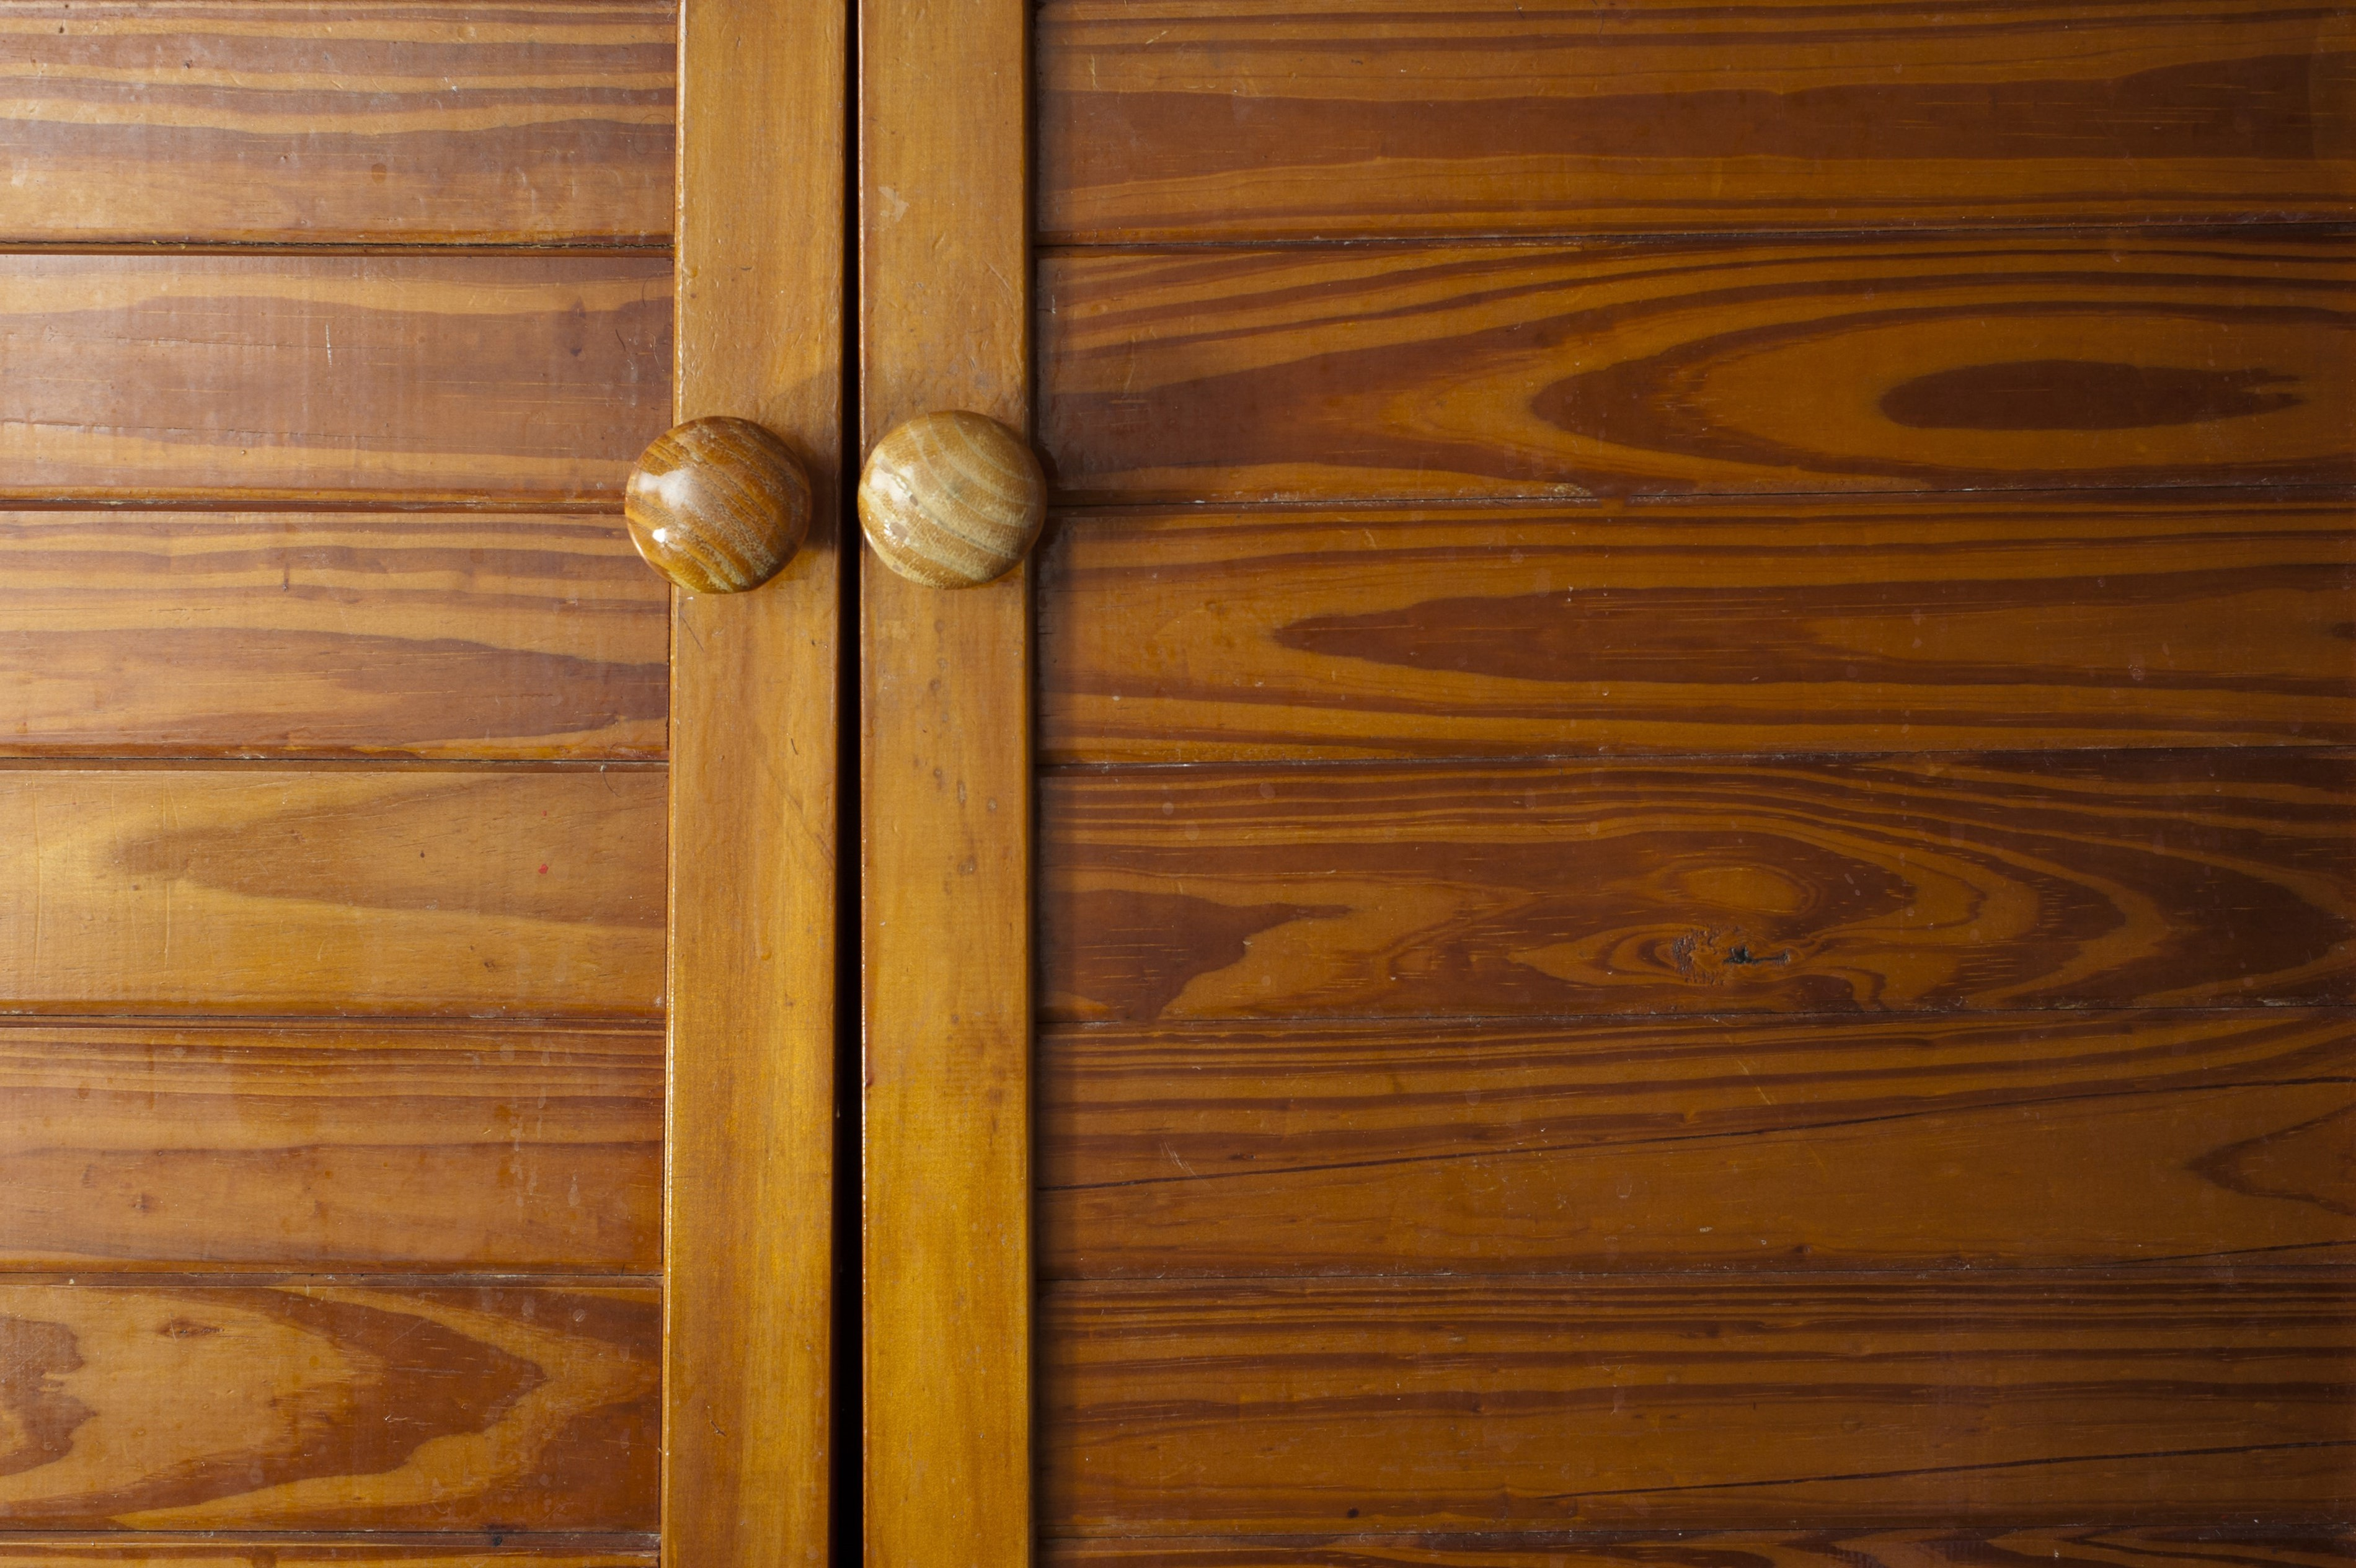 wood cabinet doors | Free backgrounds and textures | Cr103.com